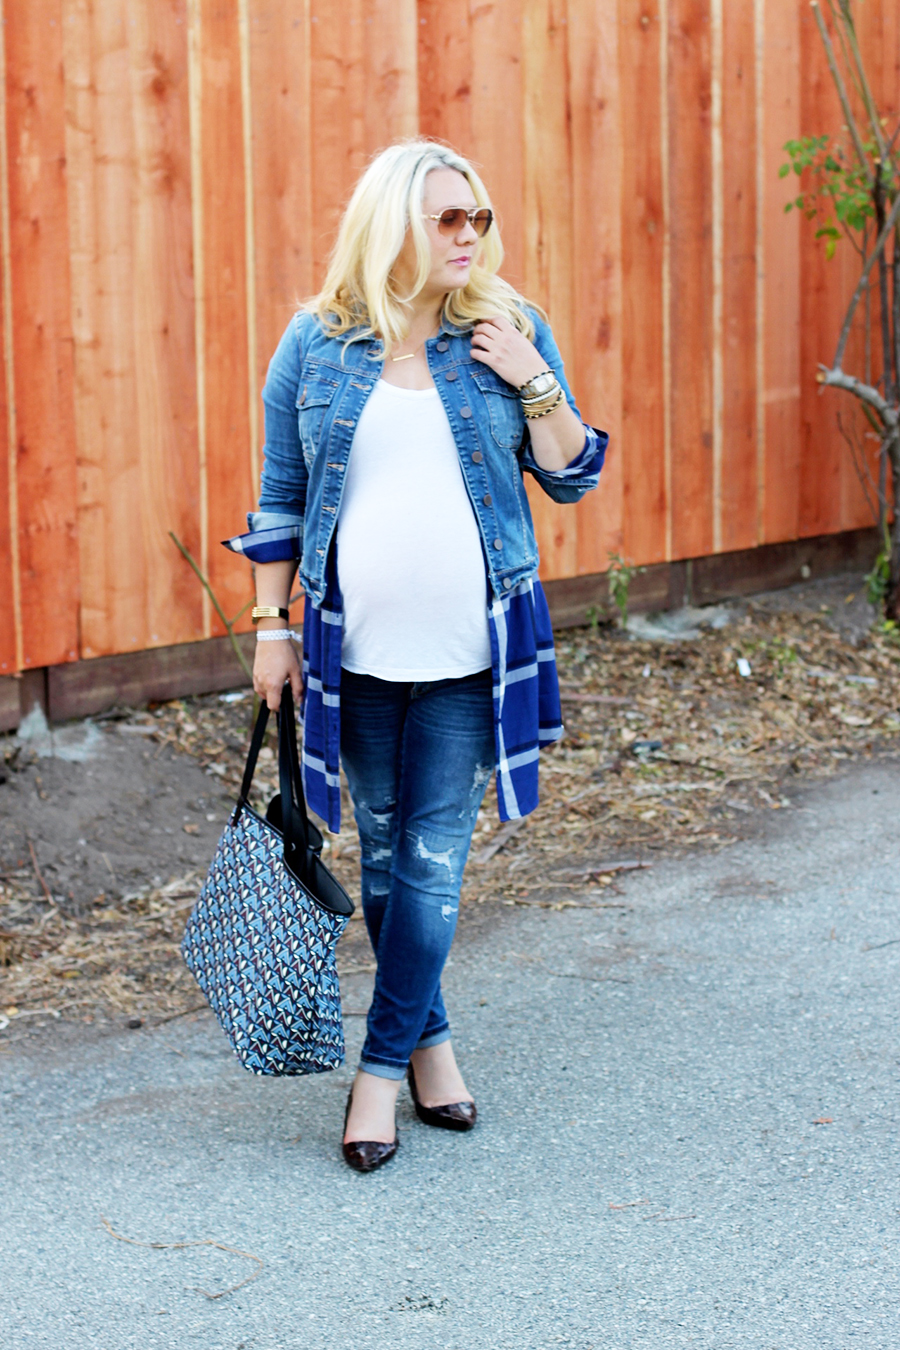 Plaid Shirtdress-Maternity Style-Styling Your Baby Bump-Styling Tips-Pregnancy Style-Have Need Want 12